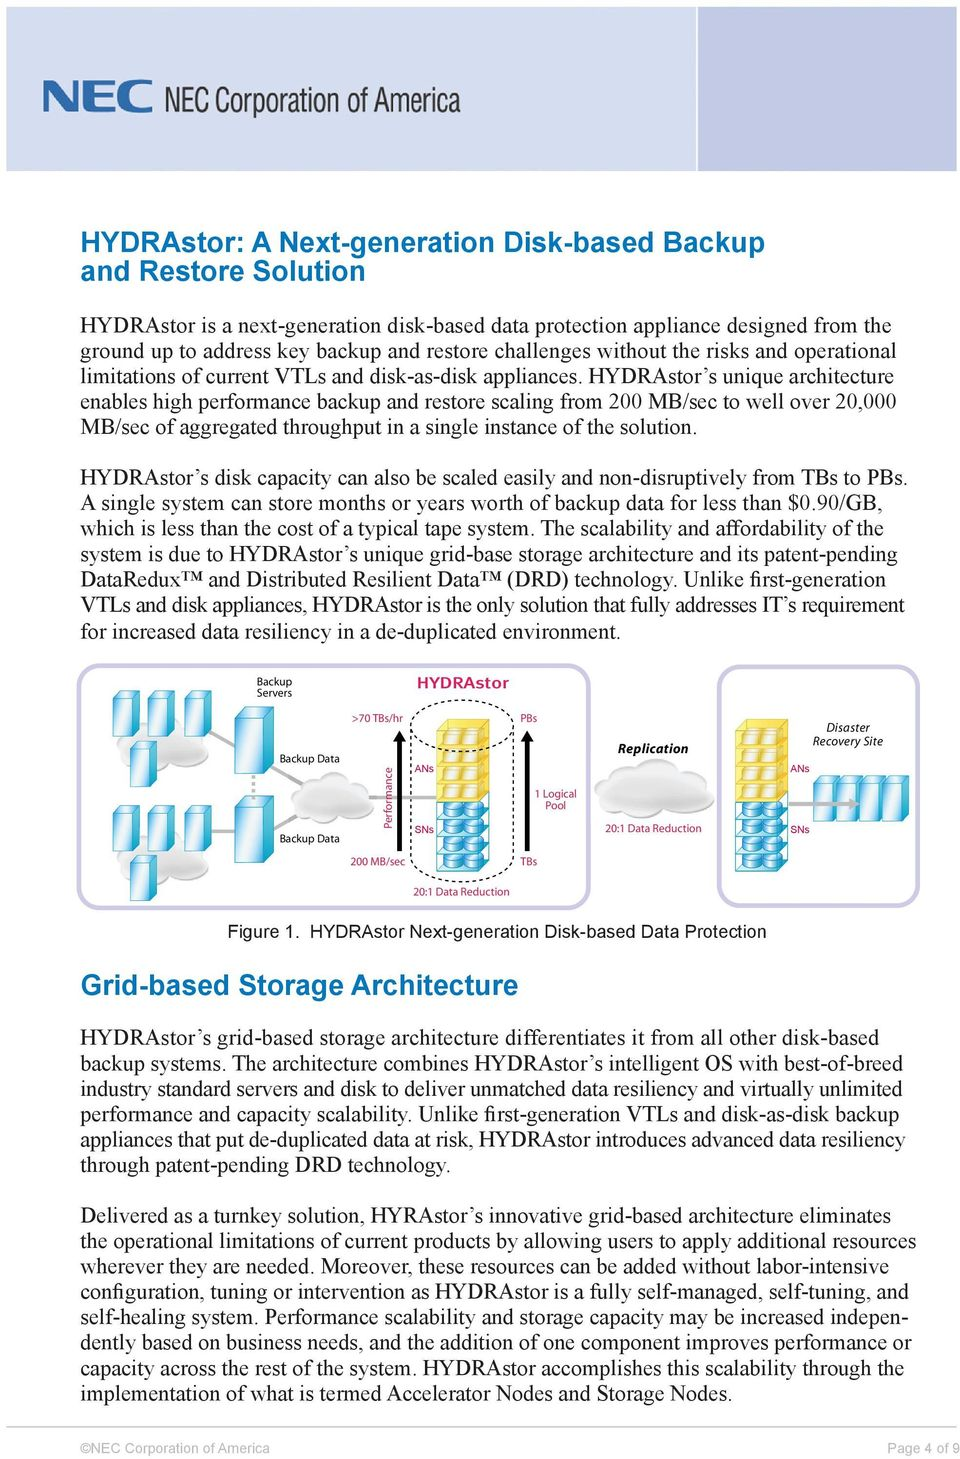 HYDRAstor s unique architecture enables high performance backup and restore scaling from 200 MB/sec to well over 20,000 MB/sec of aggregated throughput in a single instance of the solution.